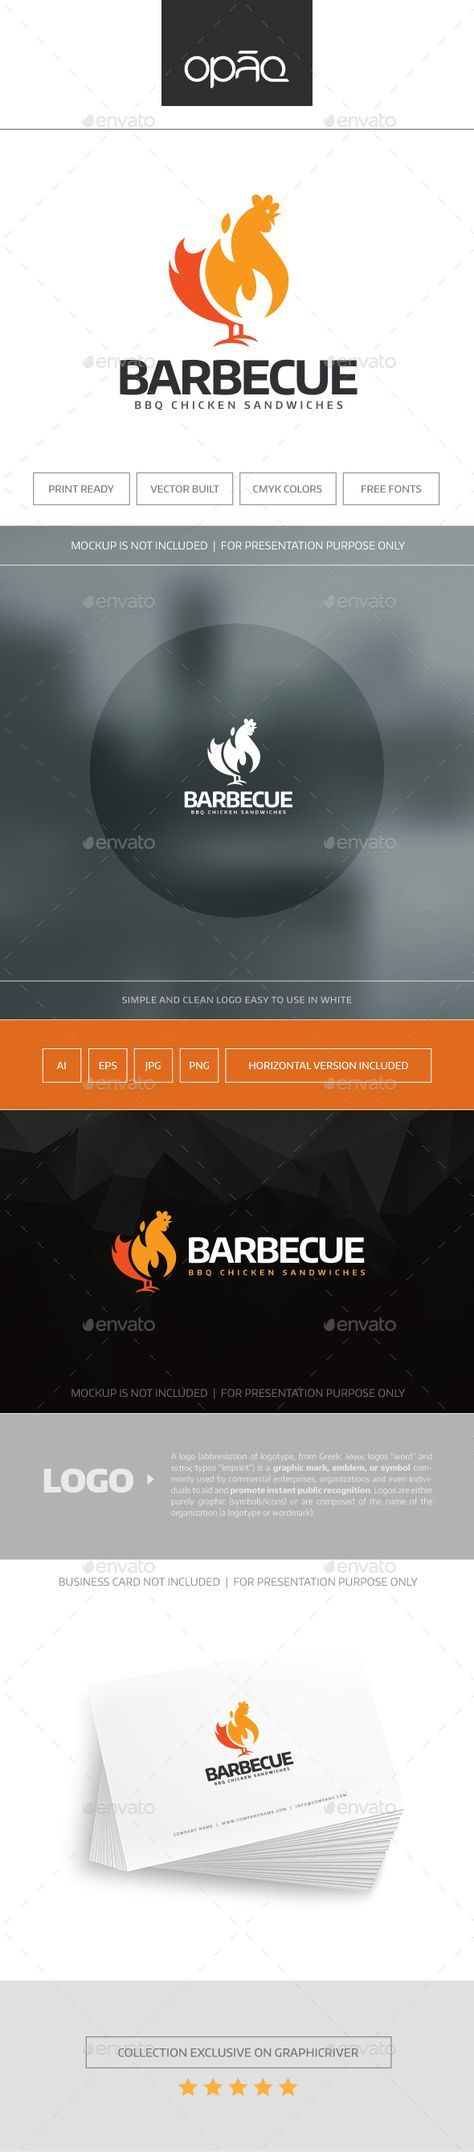 BBQ Chicken  Logo Design Template Vector #logotype Download it here: http://graphicriver.net/item/bbq-chicken-logo/16058884?s_rank=1645?ref=nexion